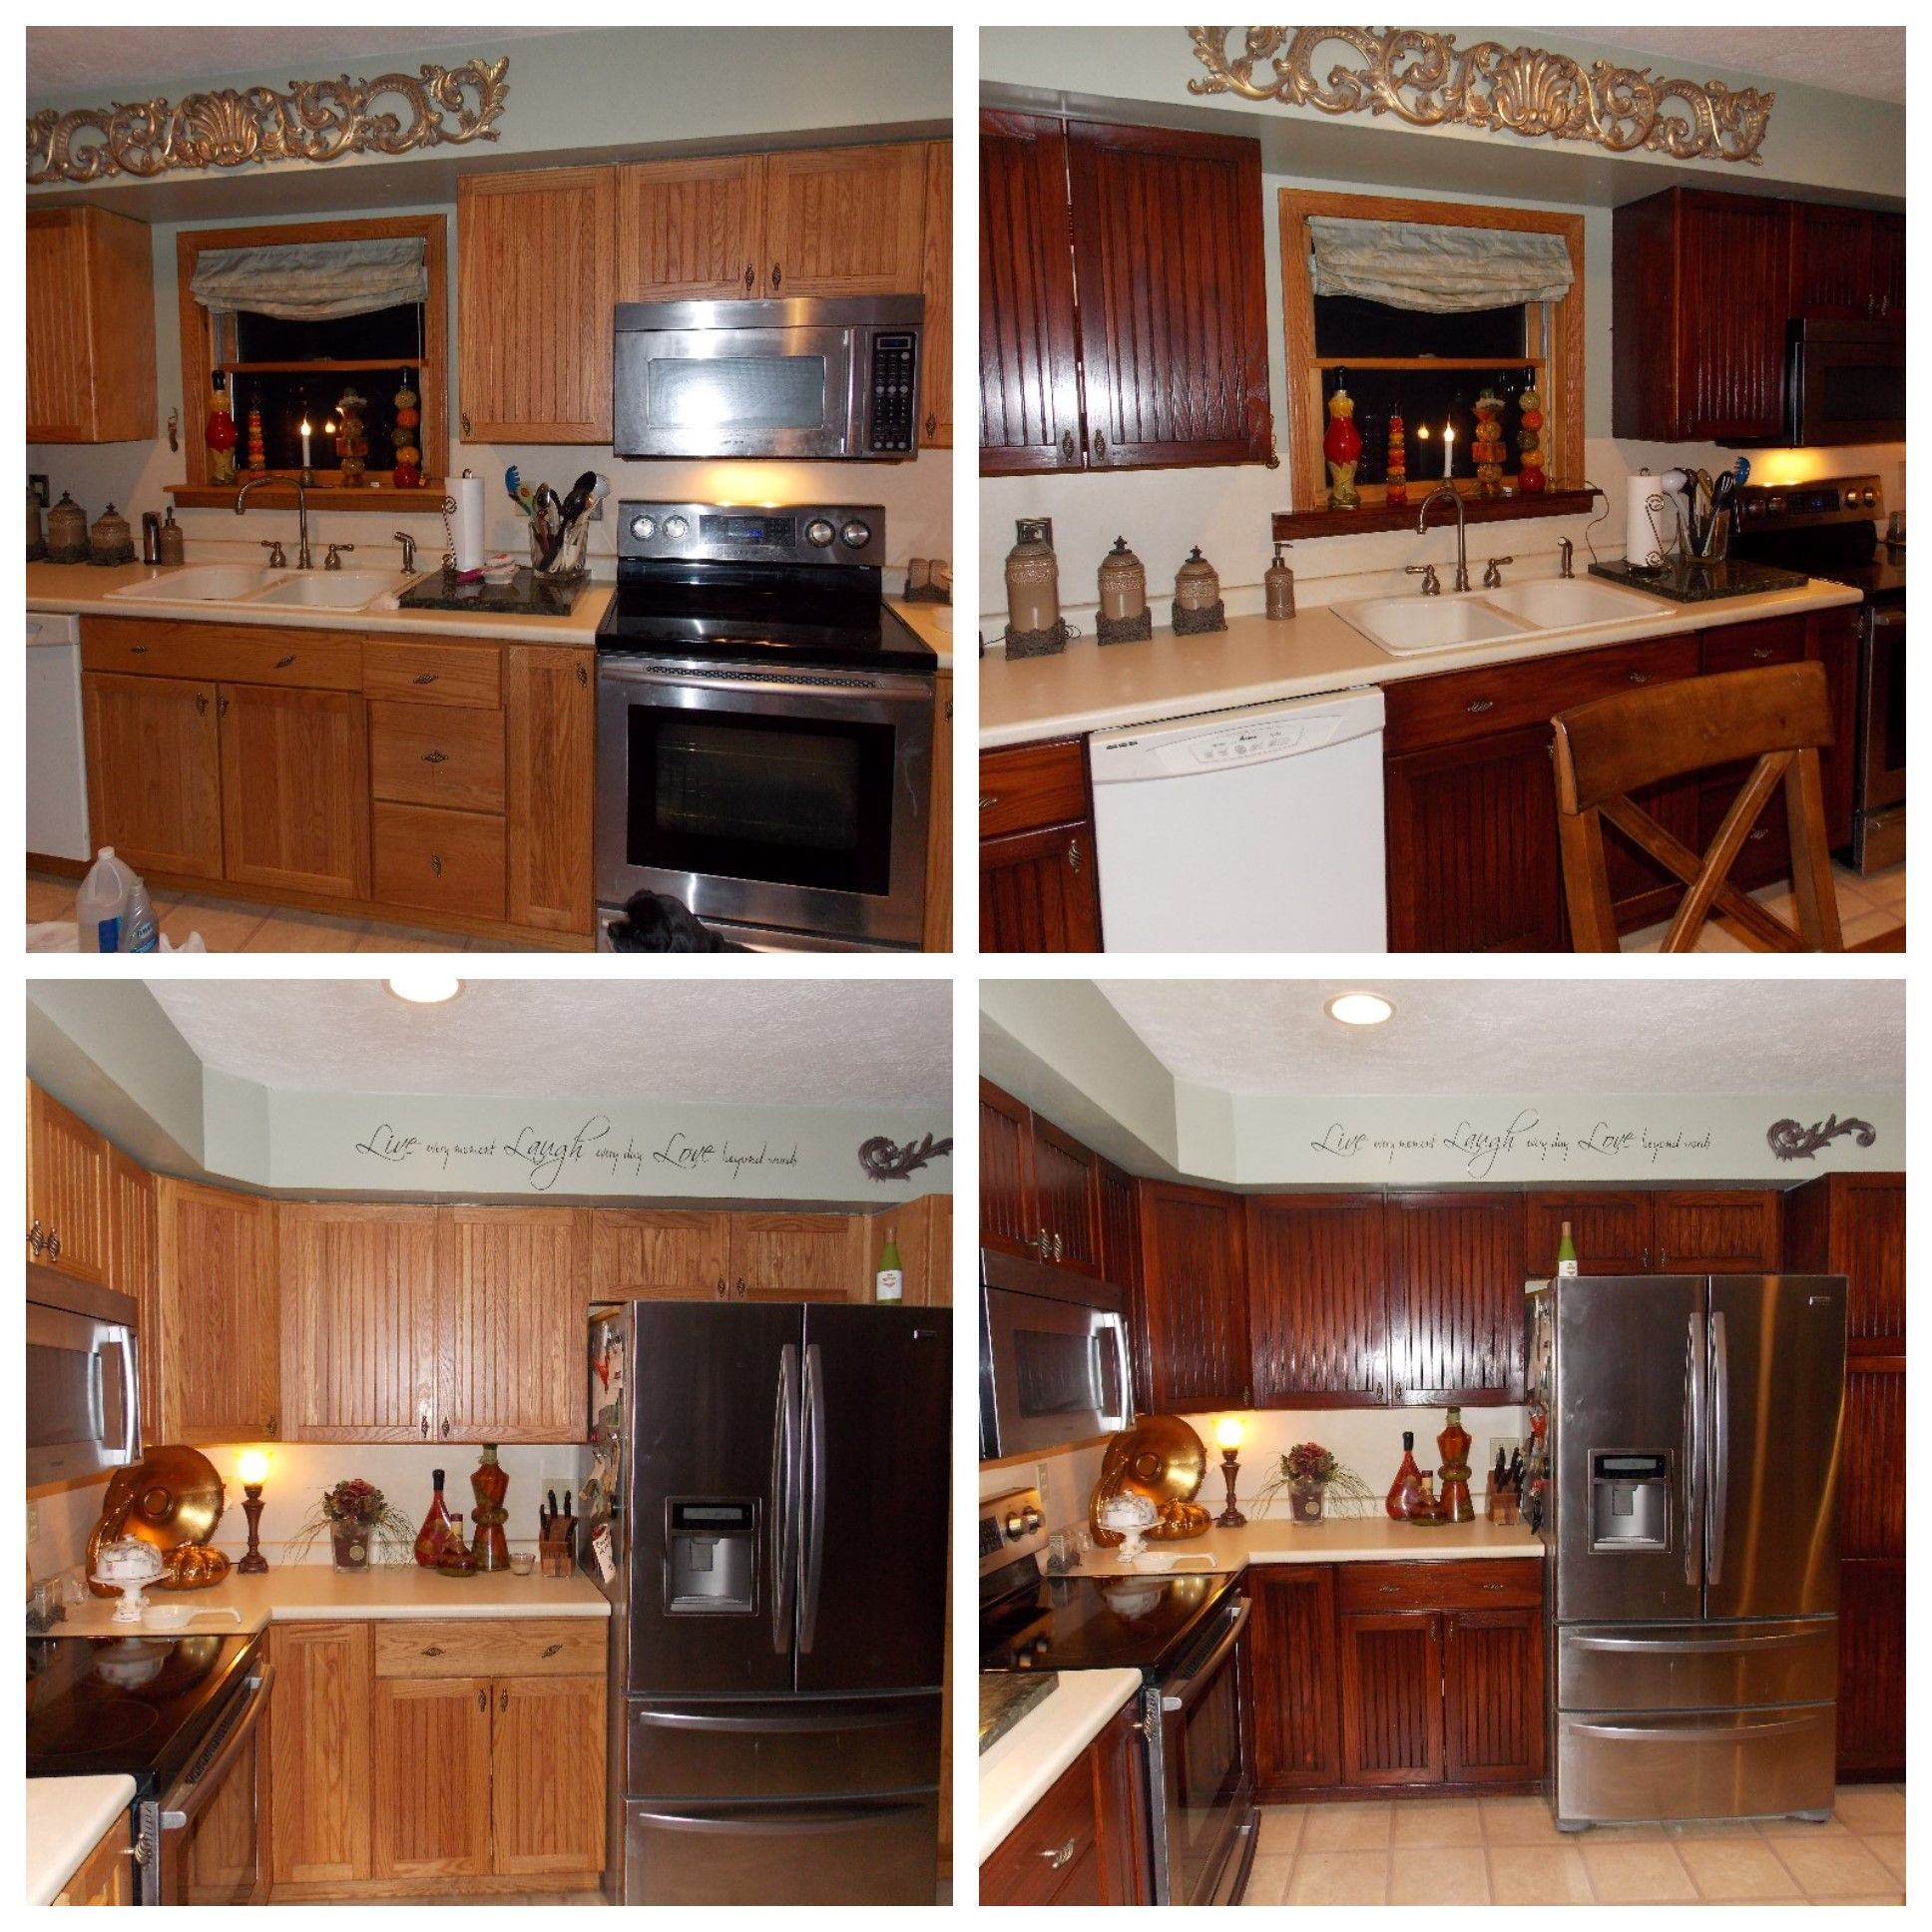 Brown Oak Kitchen Cabinets: Honey Oak Kitchen Restained Using General Finishes Brown